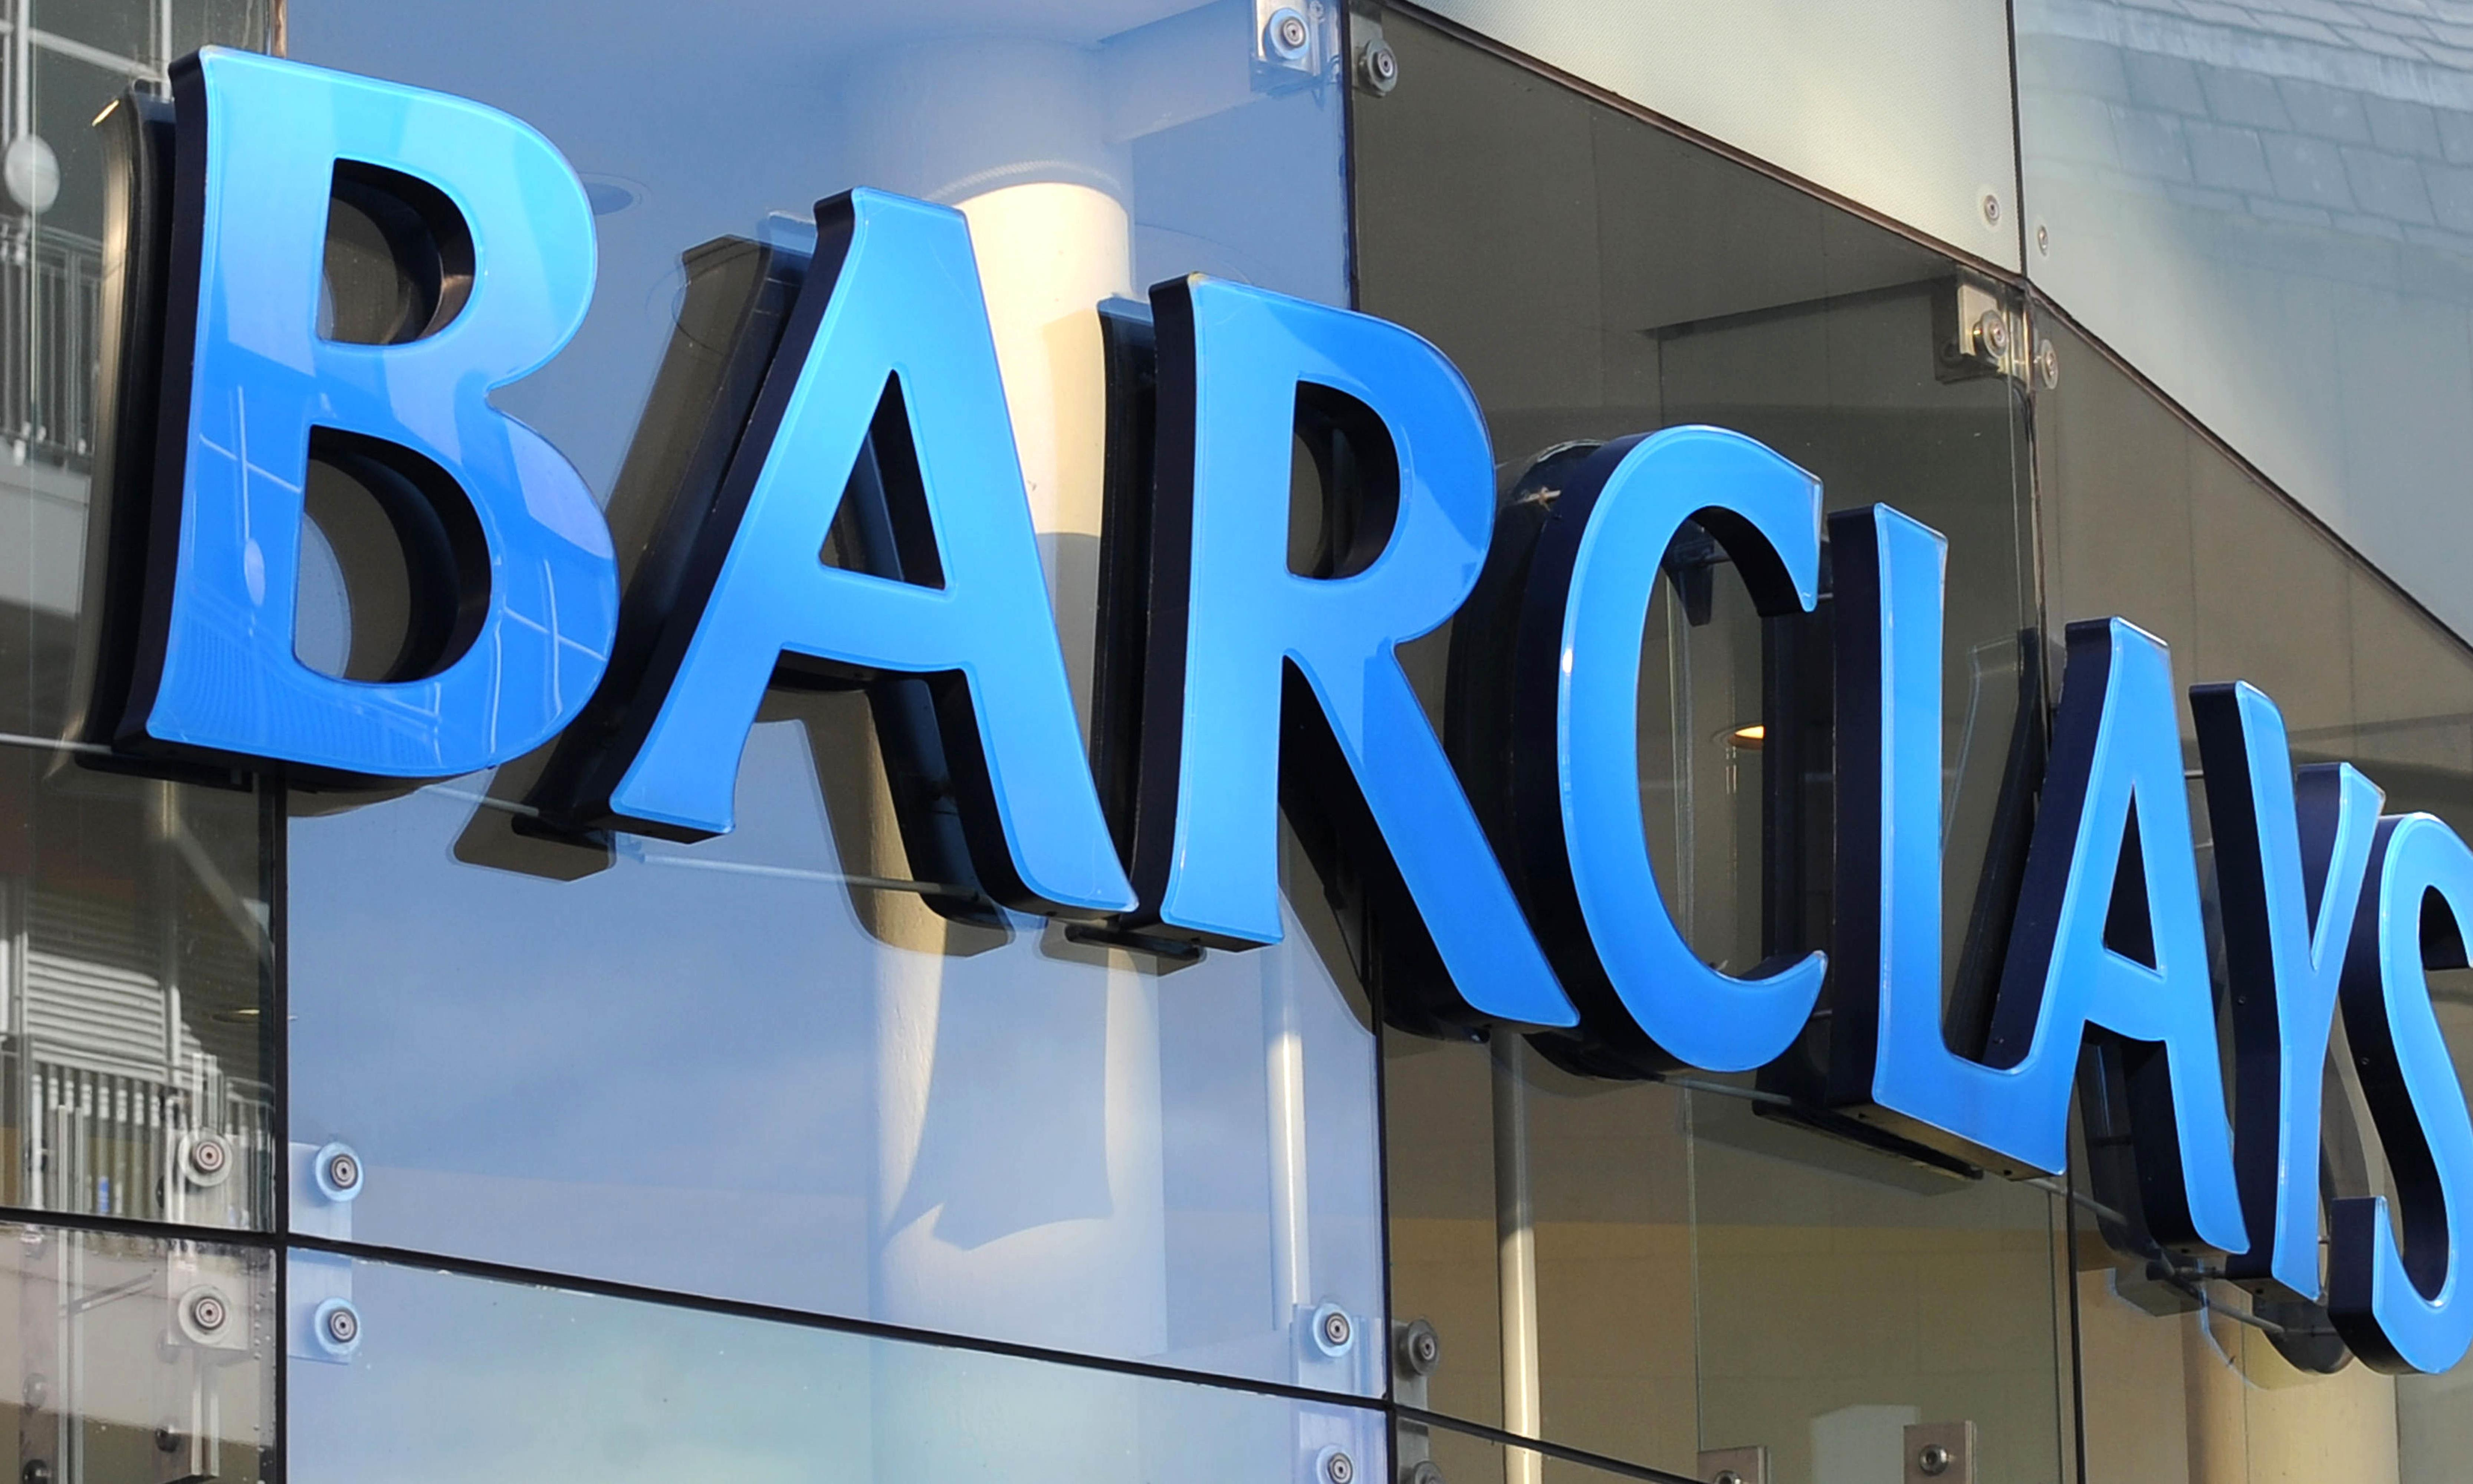 UK environmentalists target Barclays in fossil fuels campaign